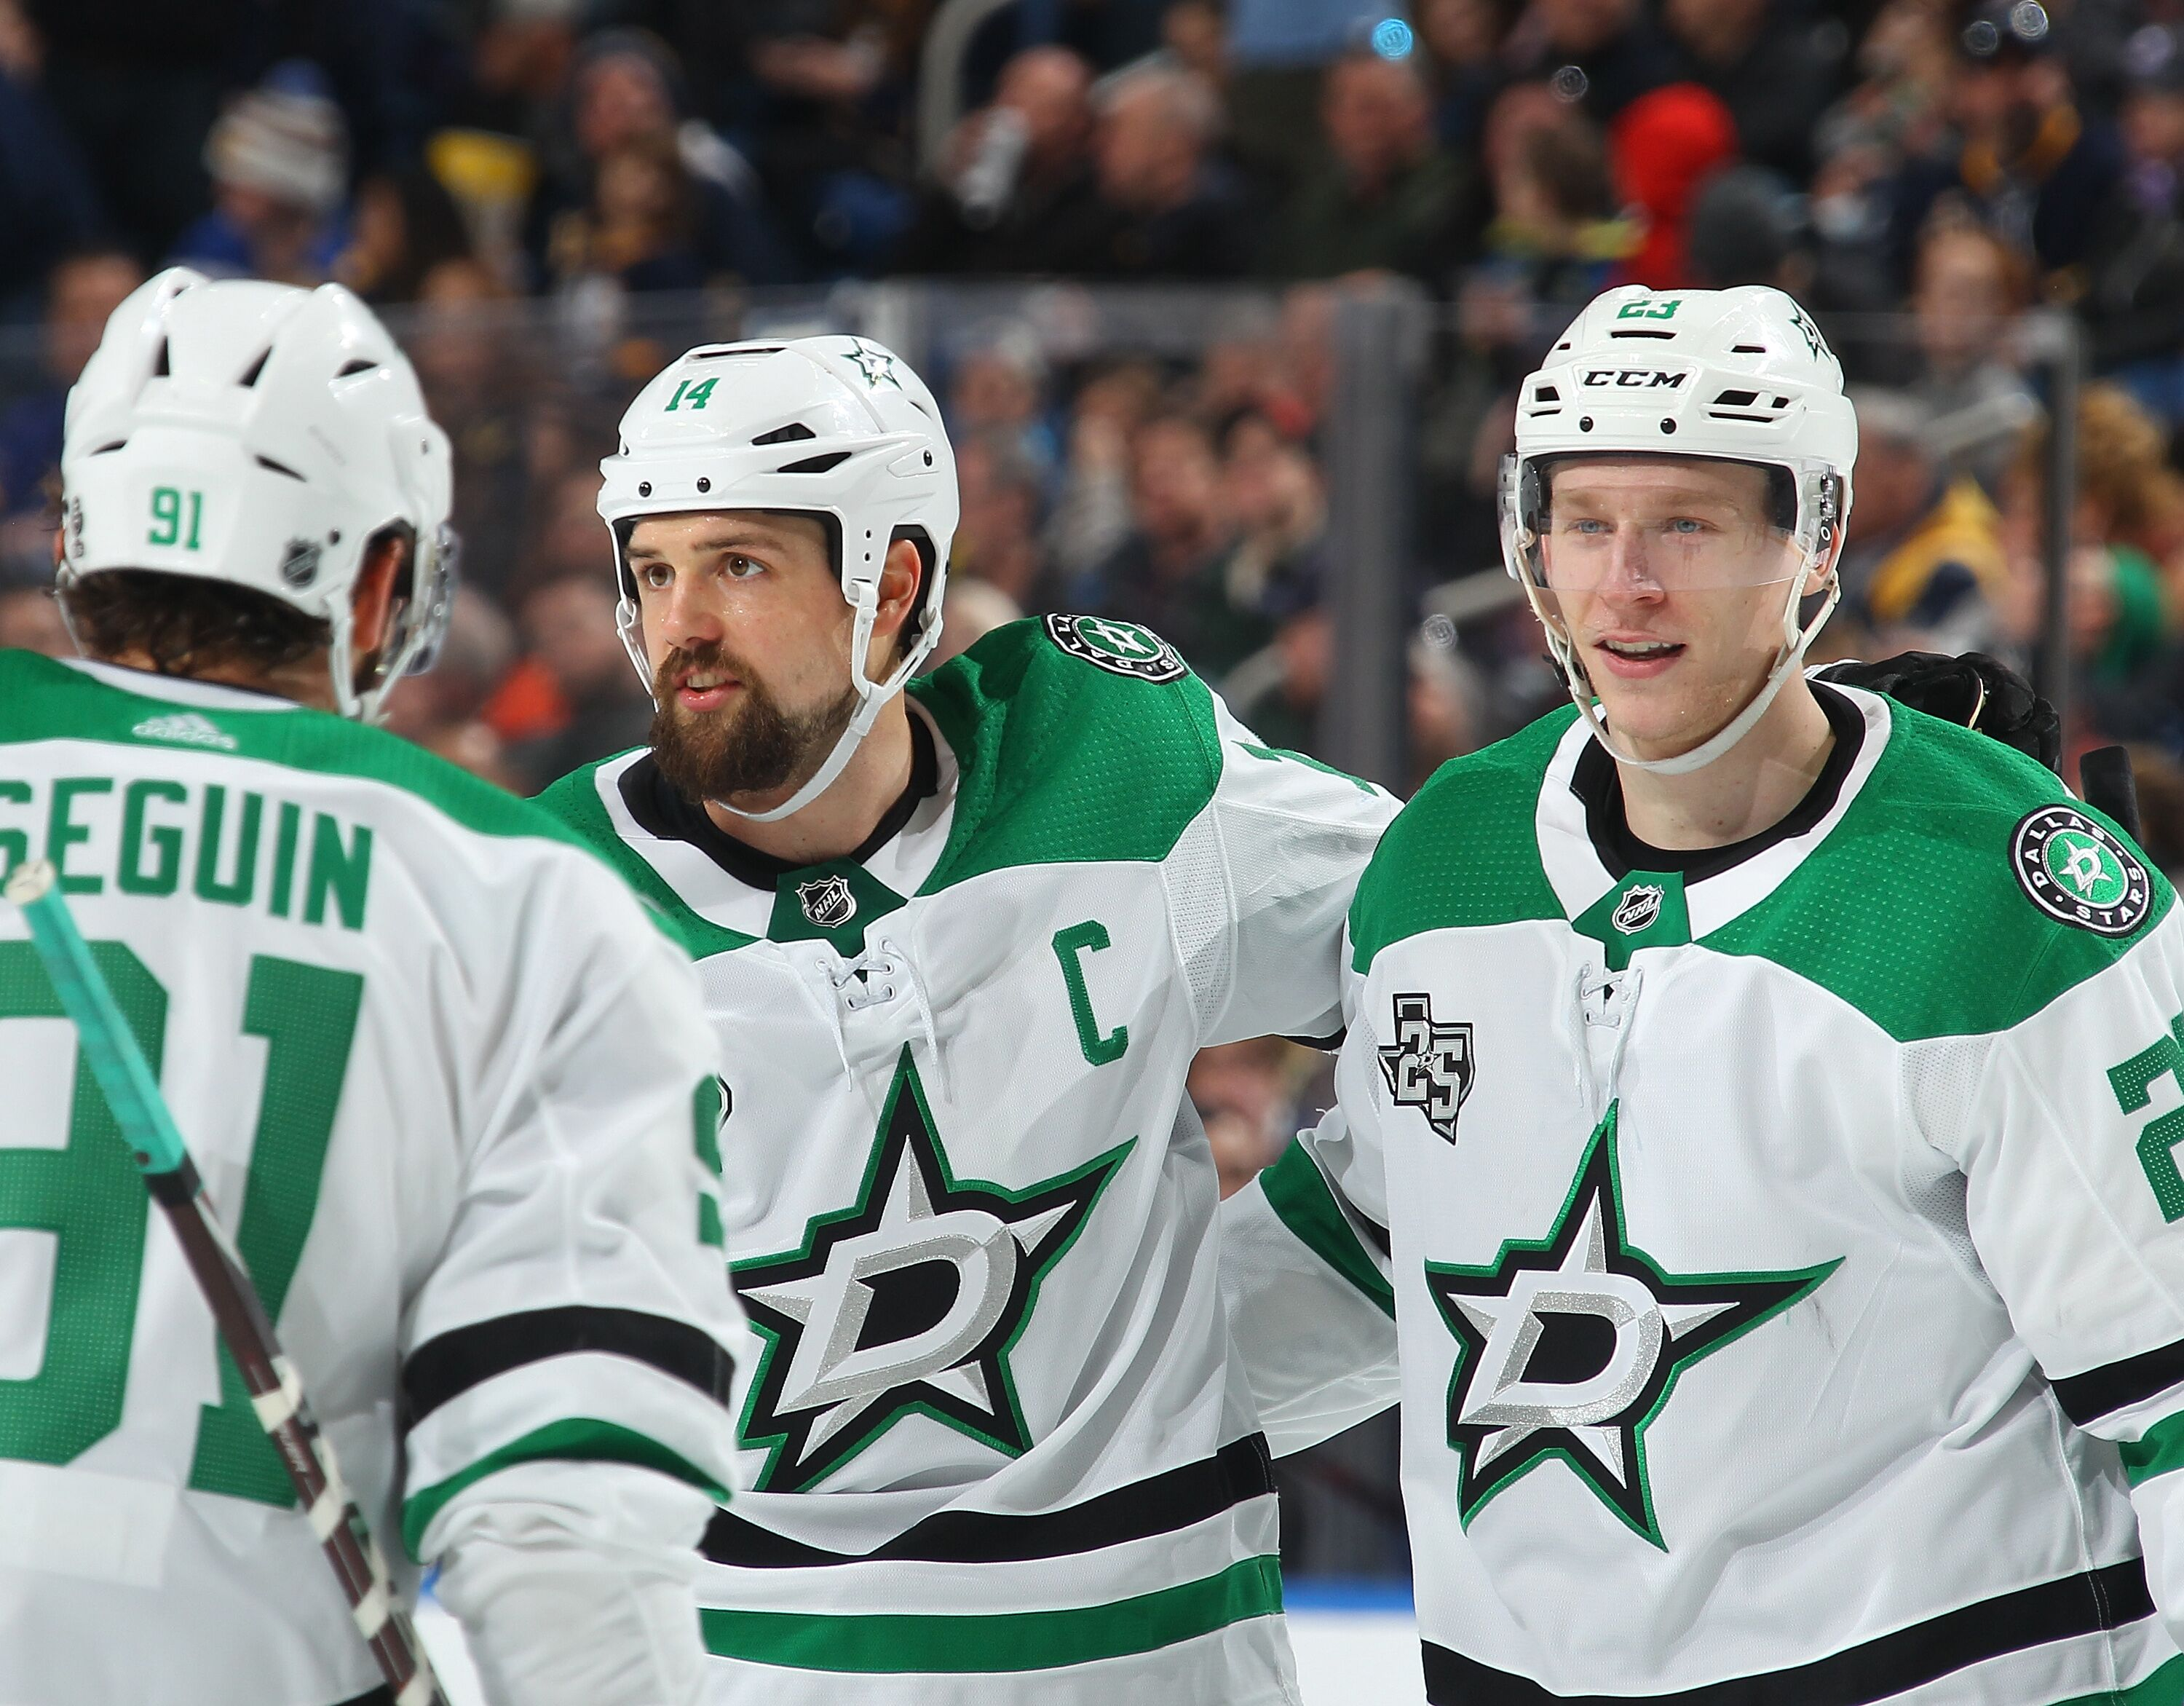 907723570-dallas-stars-v-buffalo-sabres.jpg